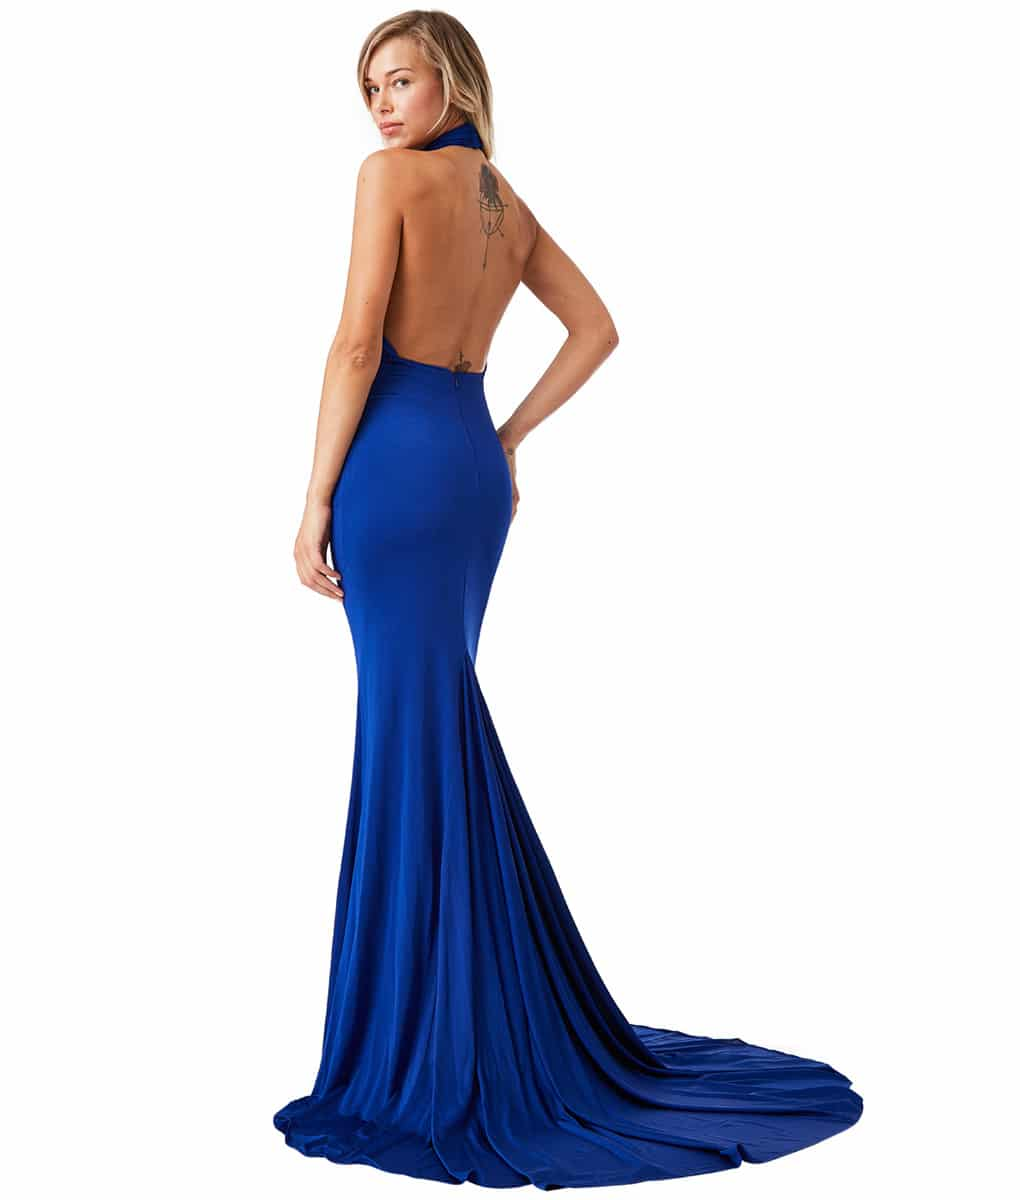 City Goddess - Blue High-Neck Gown | Alila Boutique